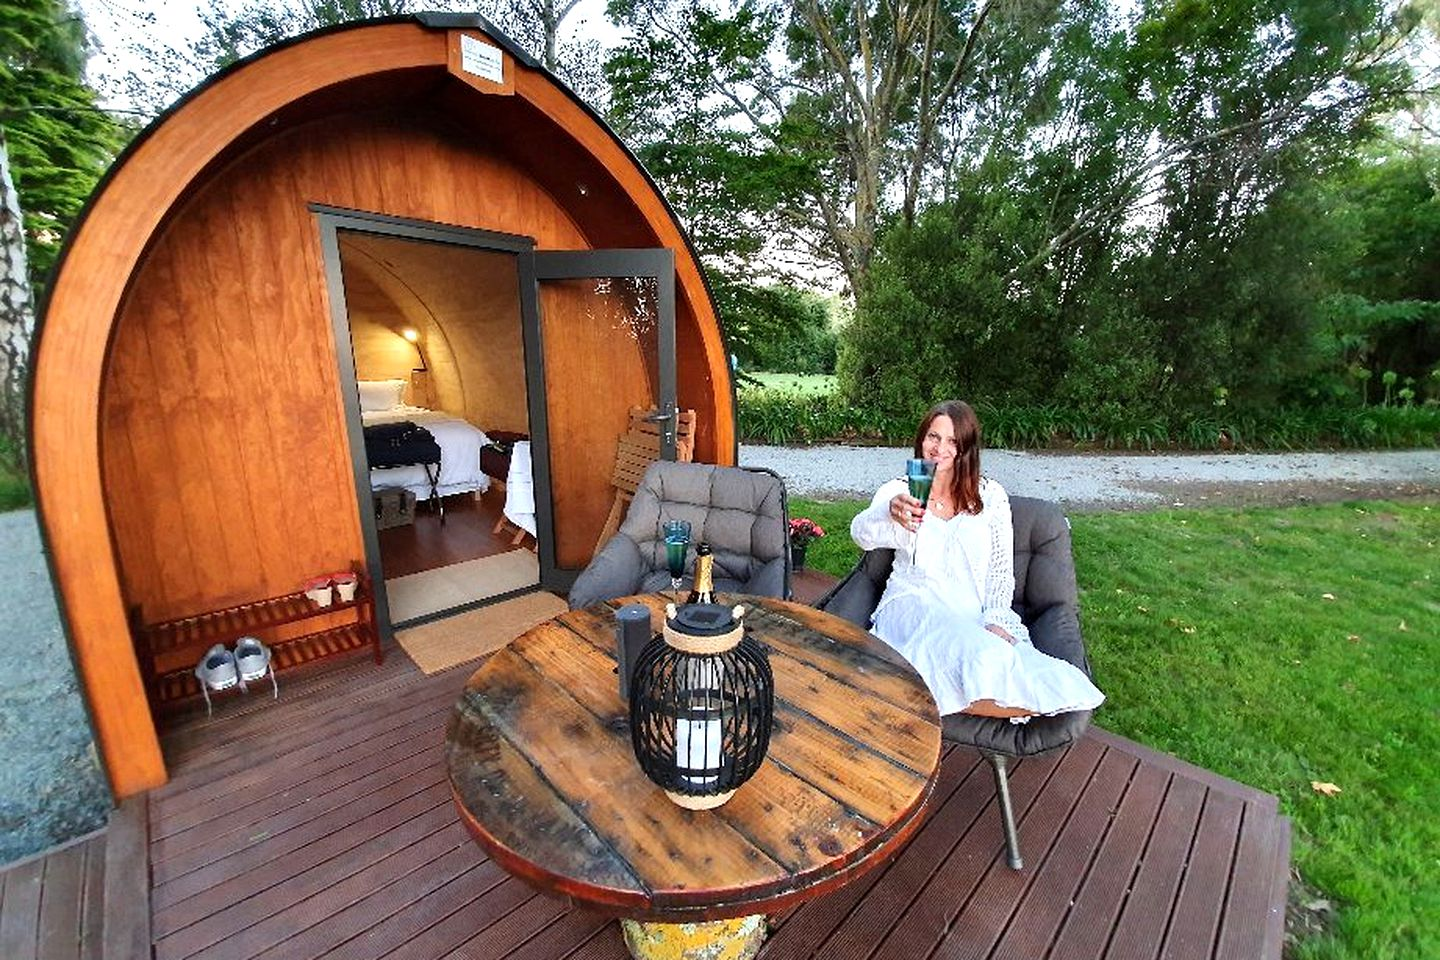 Looking for places to visit in New Zealand? Check out this totally unique pod accommodation for a romantic New Zealand hotel alternative.